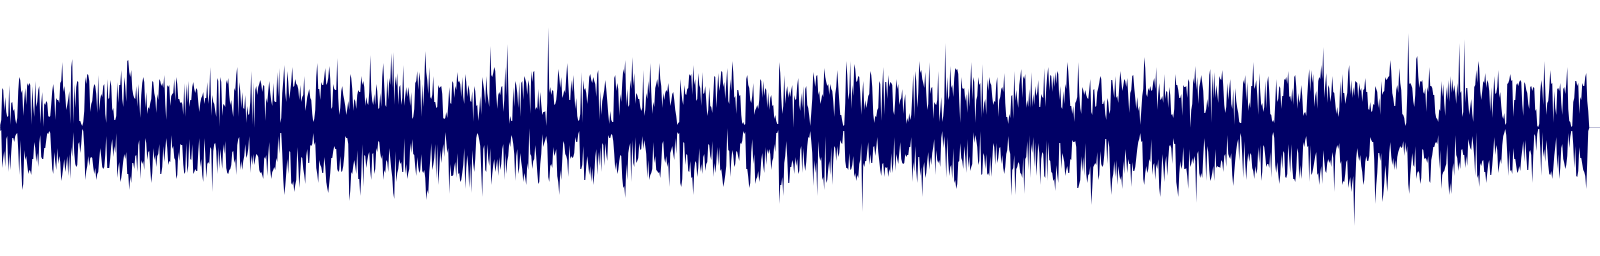 waveform of track #100244